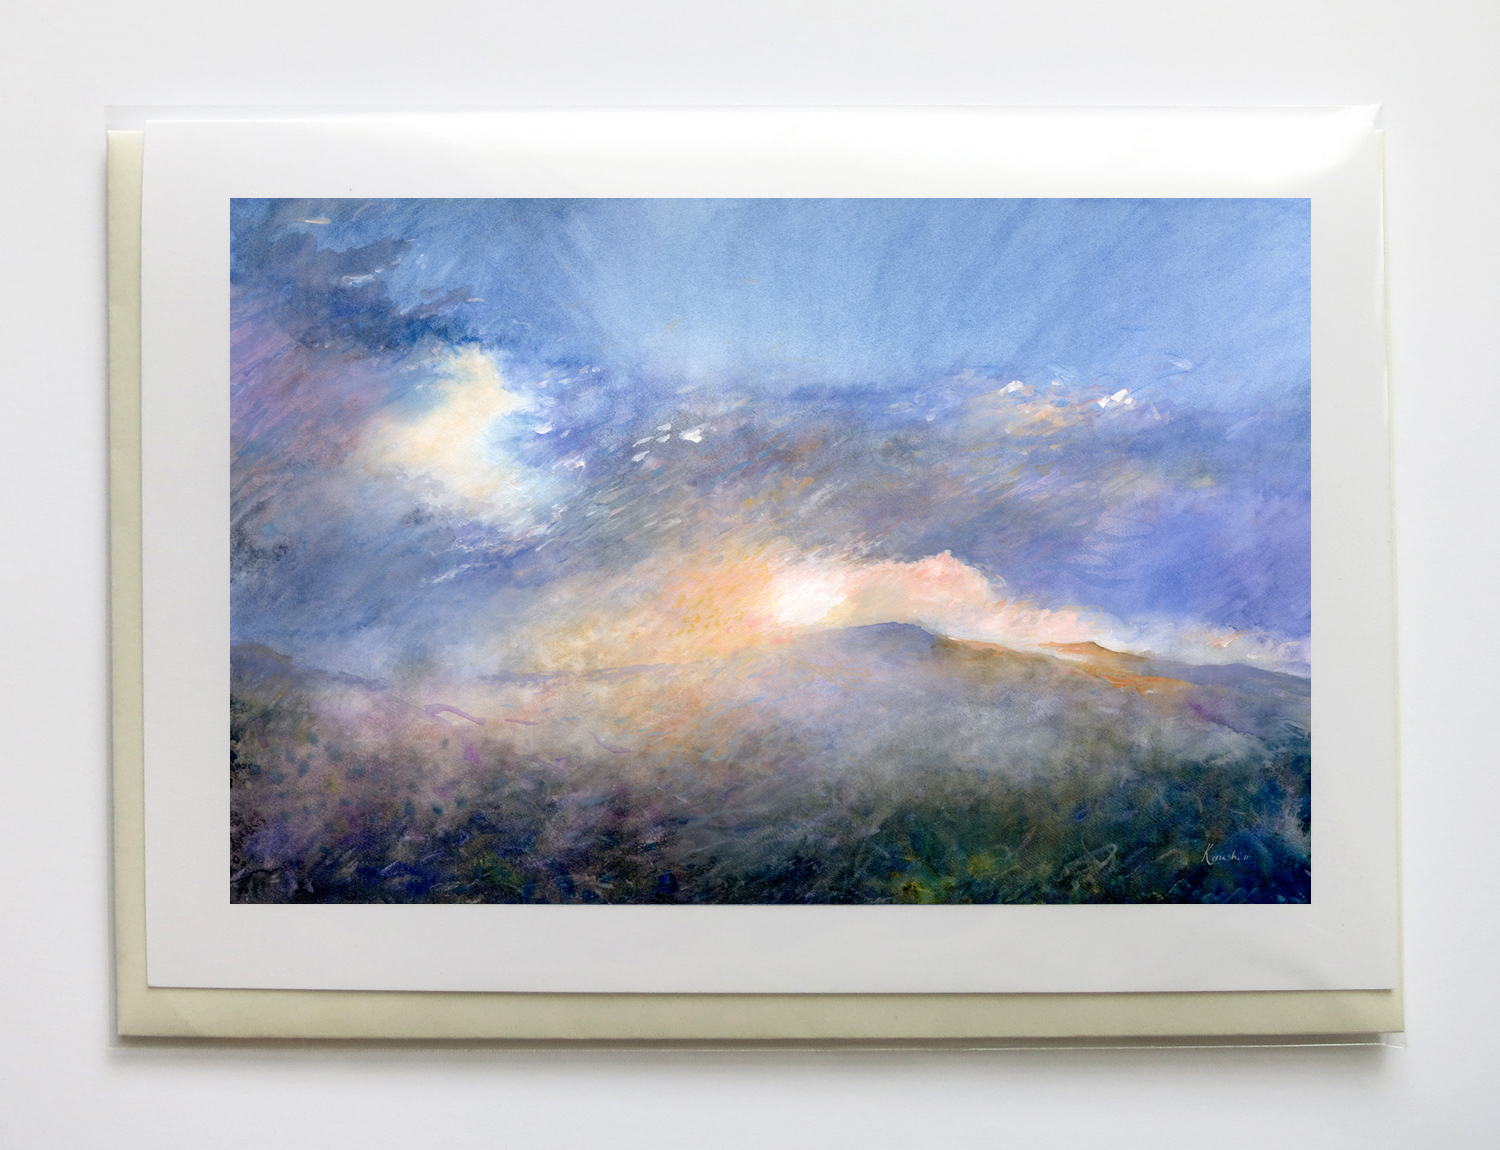 """scenic - 5"""" x 7"""", signed, frame-able, gicleé greeting cards$6.95 each or $25 set of five"""